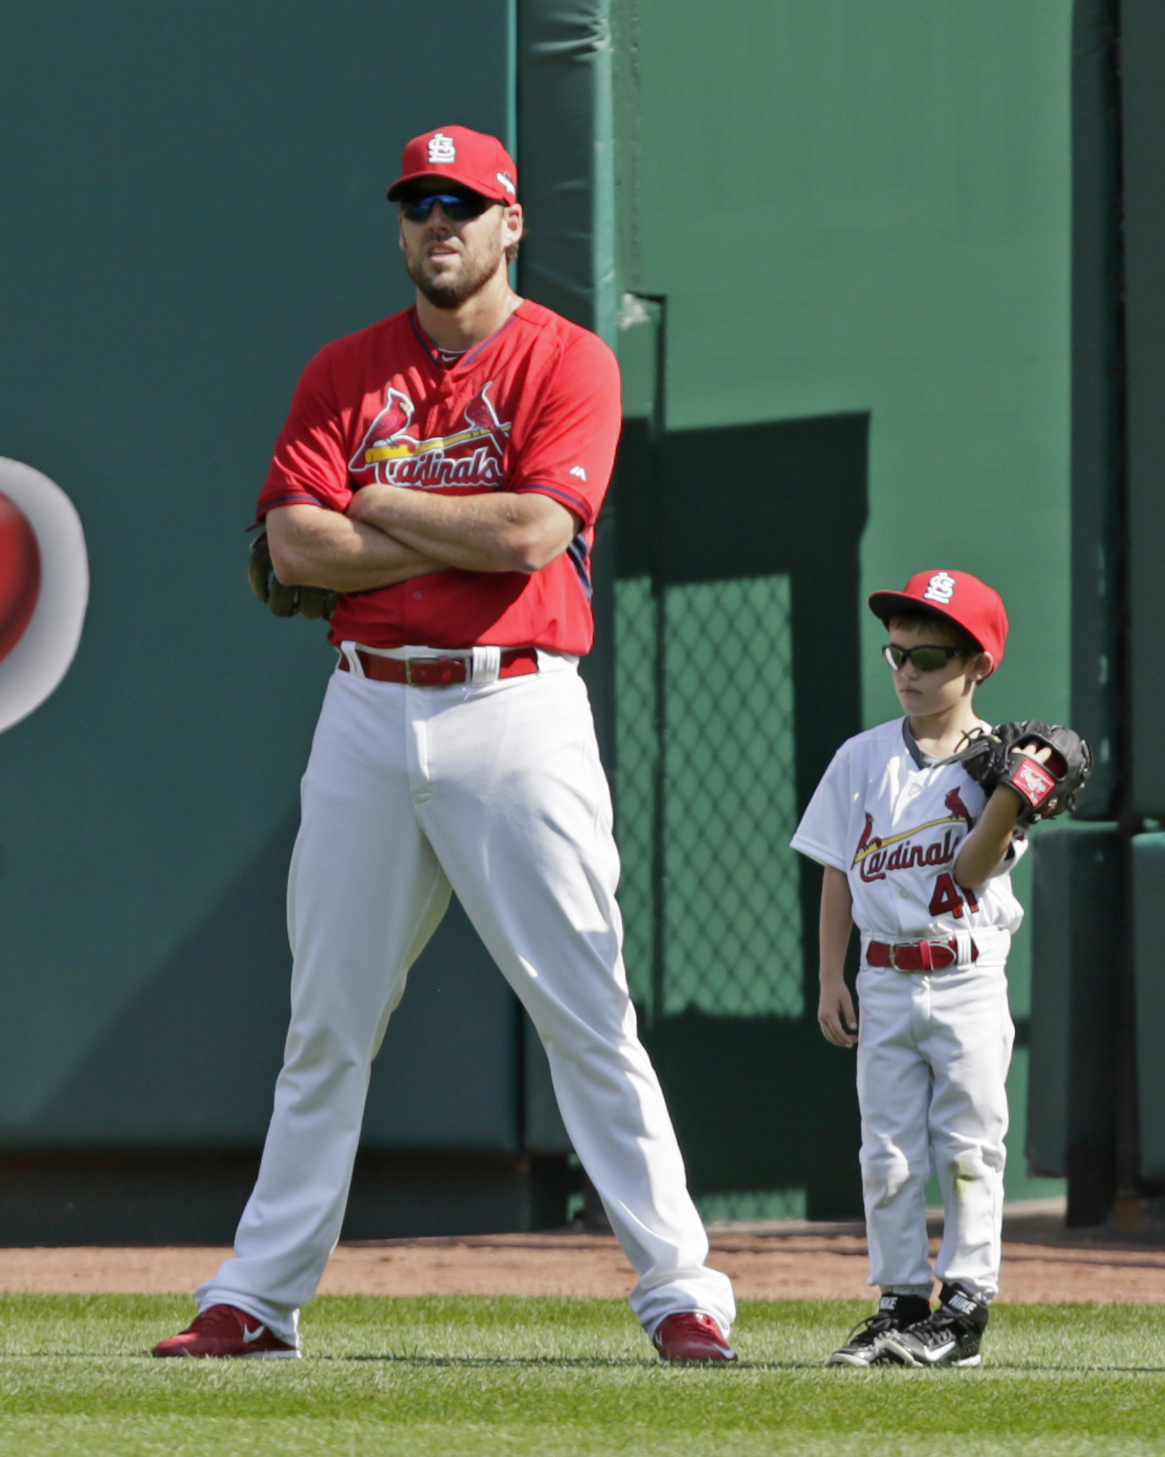 St. Louis Cardinals Game 1 starter John Lackey stands in the outfield with his six-year-old son, Carter, during the team workout, Thursday, Oct. 8, 2015 in St. Louis. The Cardinals will face the Chicago Cubs for the first time in post-season history, in a